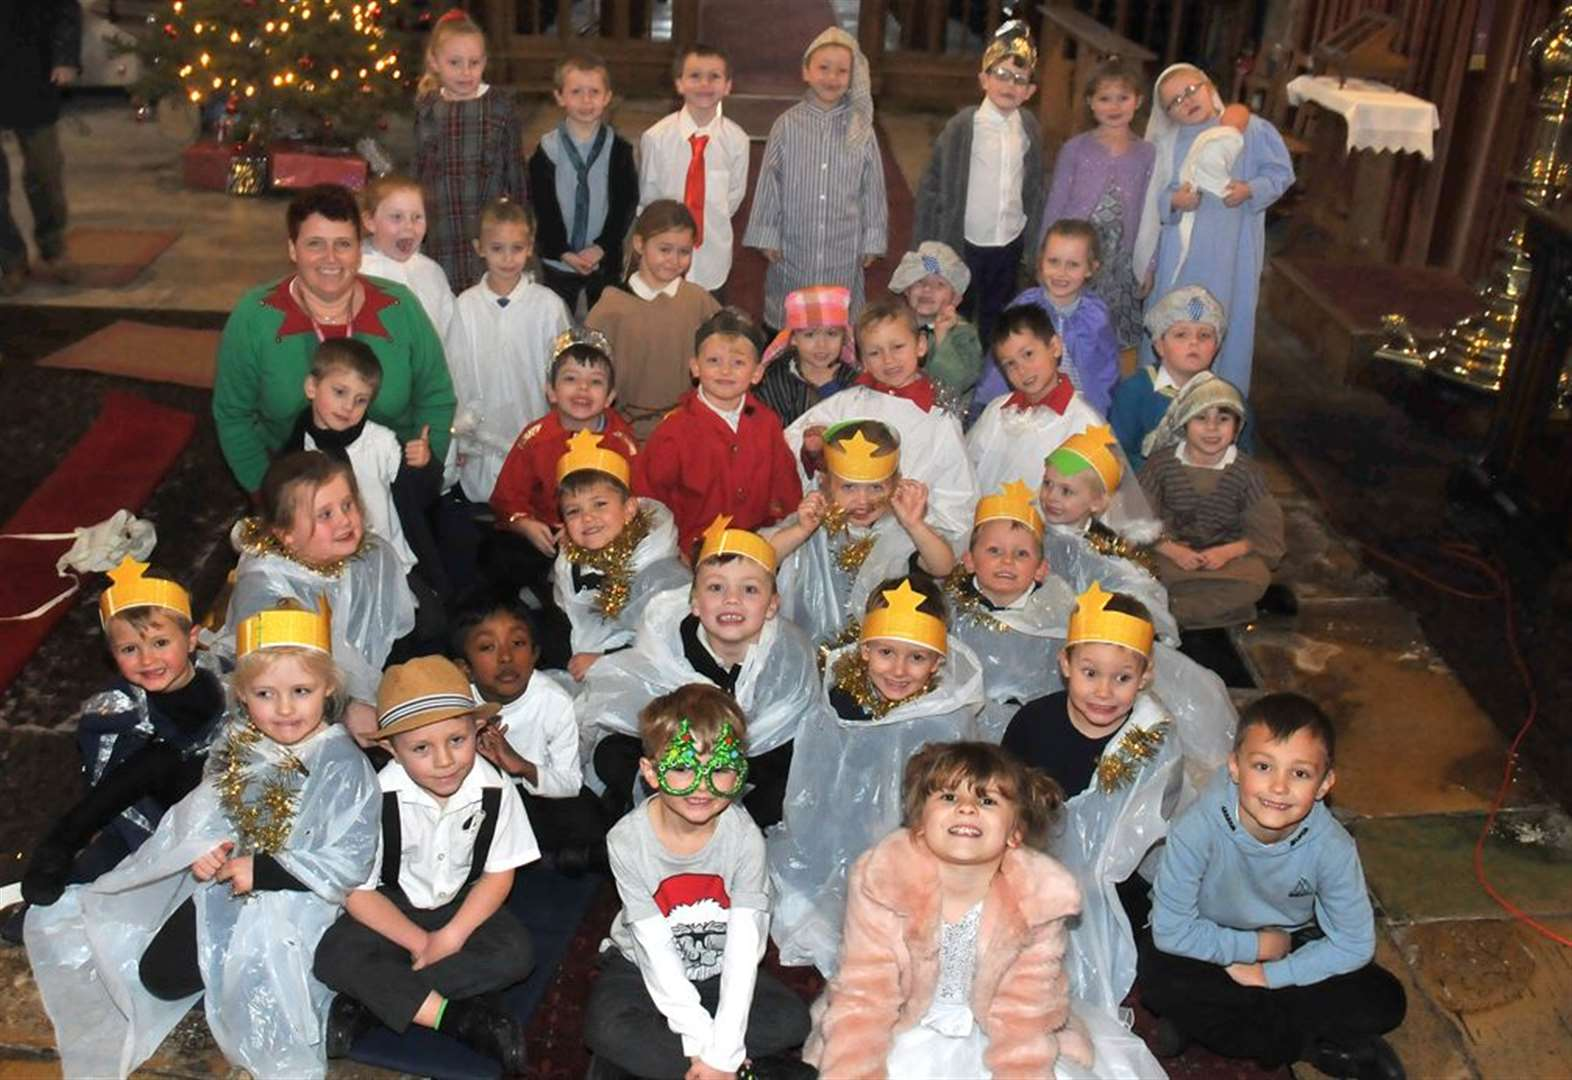 PHOTO GALLERY: Nativity turns to Strictly for school musical